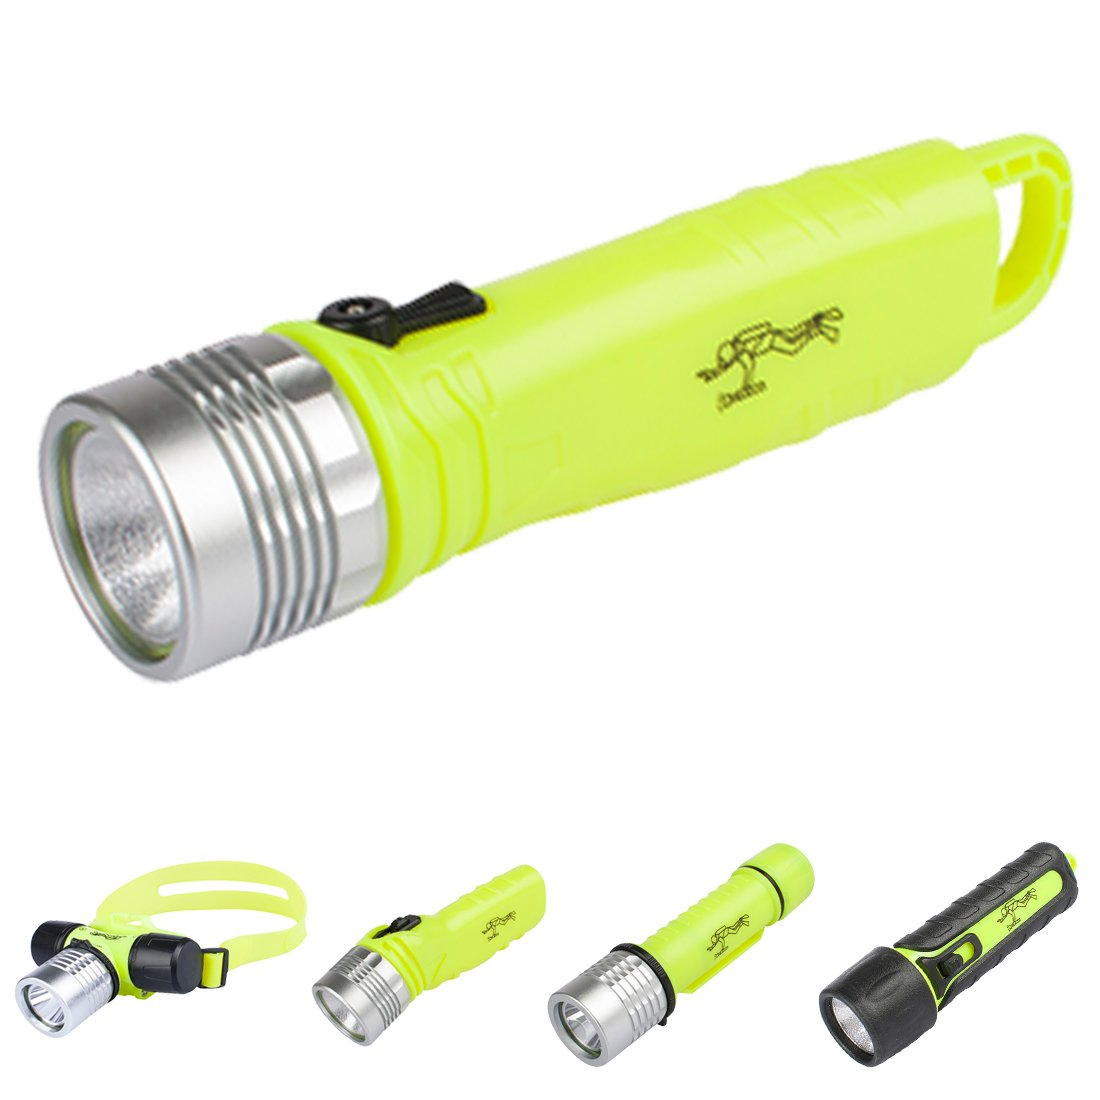 Three trees Underwater Diving Flashlight,3W 110 Lumens Waterproof LED Light,Magnetic Rotany Switch Safety Waterroof Underwater Buckle Flashlight,For Scuba Diving Outdoor (BATTERY NOT INCLUDE) by three trees